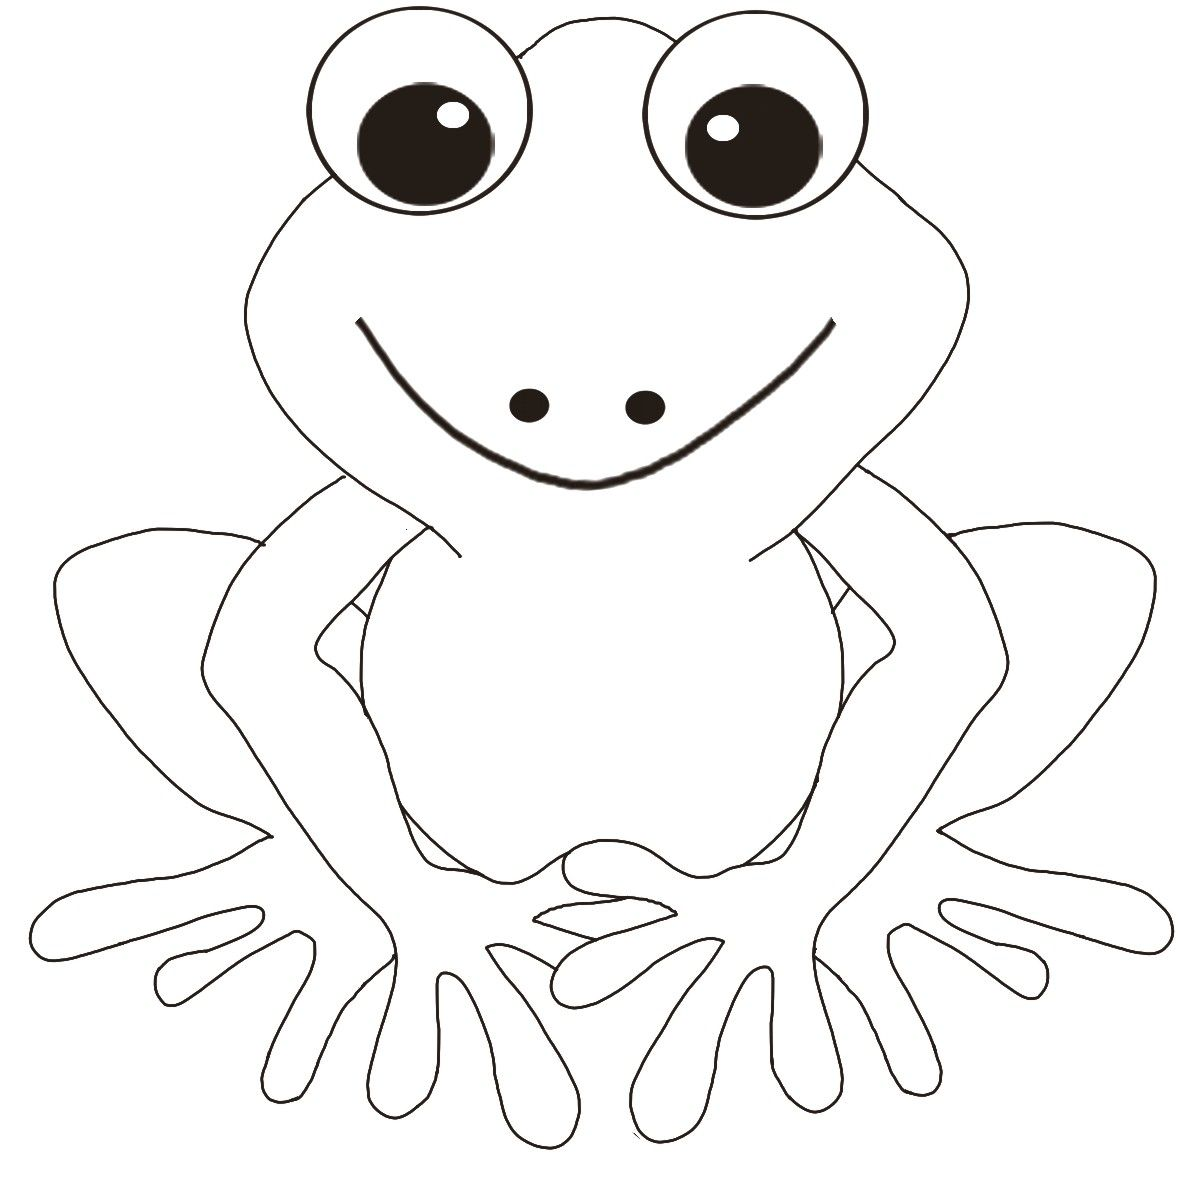 frog template | Lily Flower | Froggie | Pinterest | Frog template ...